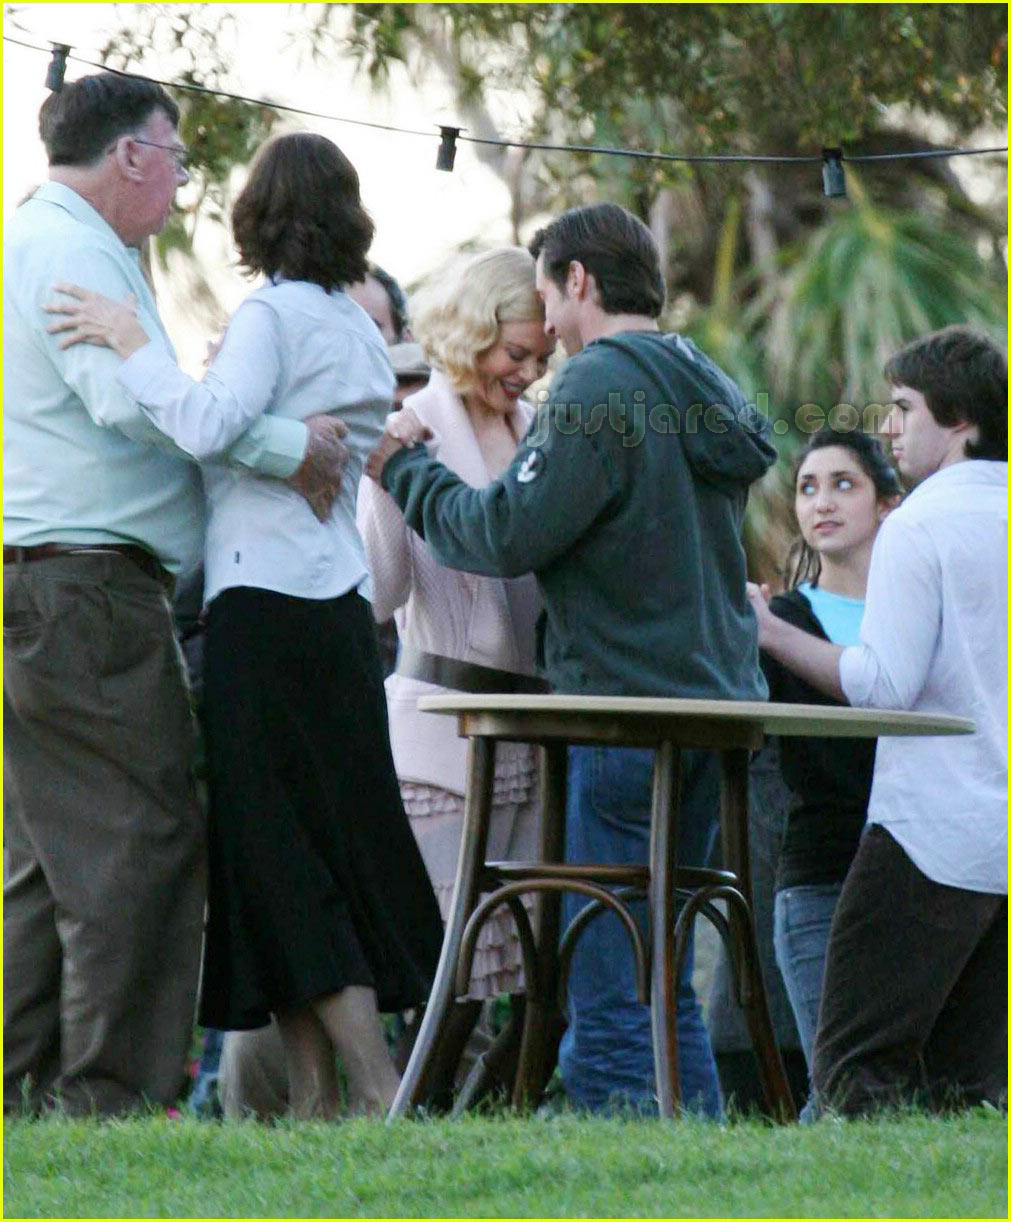 nicole kidman hugh jackman set of australia 01